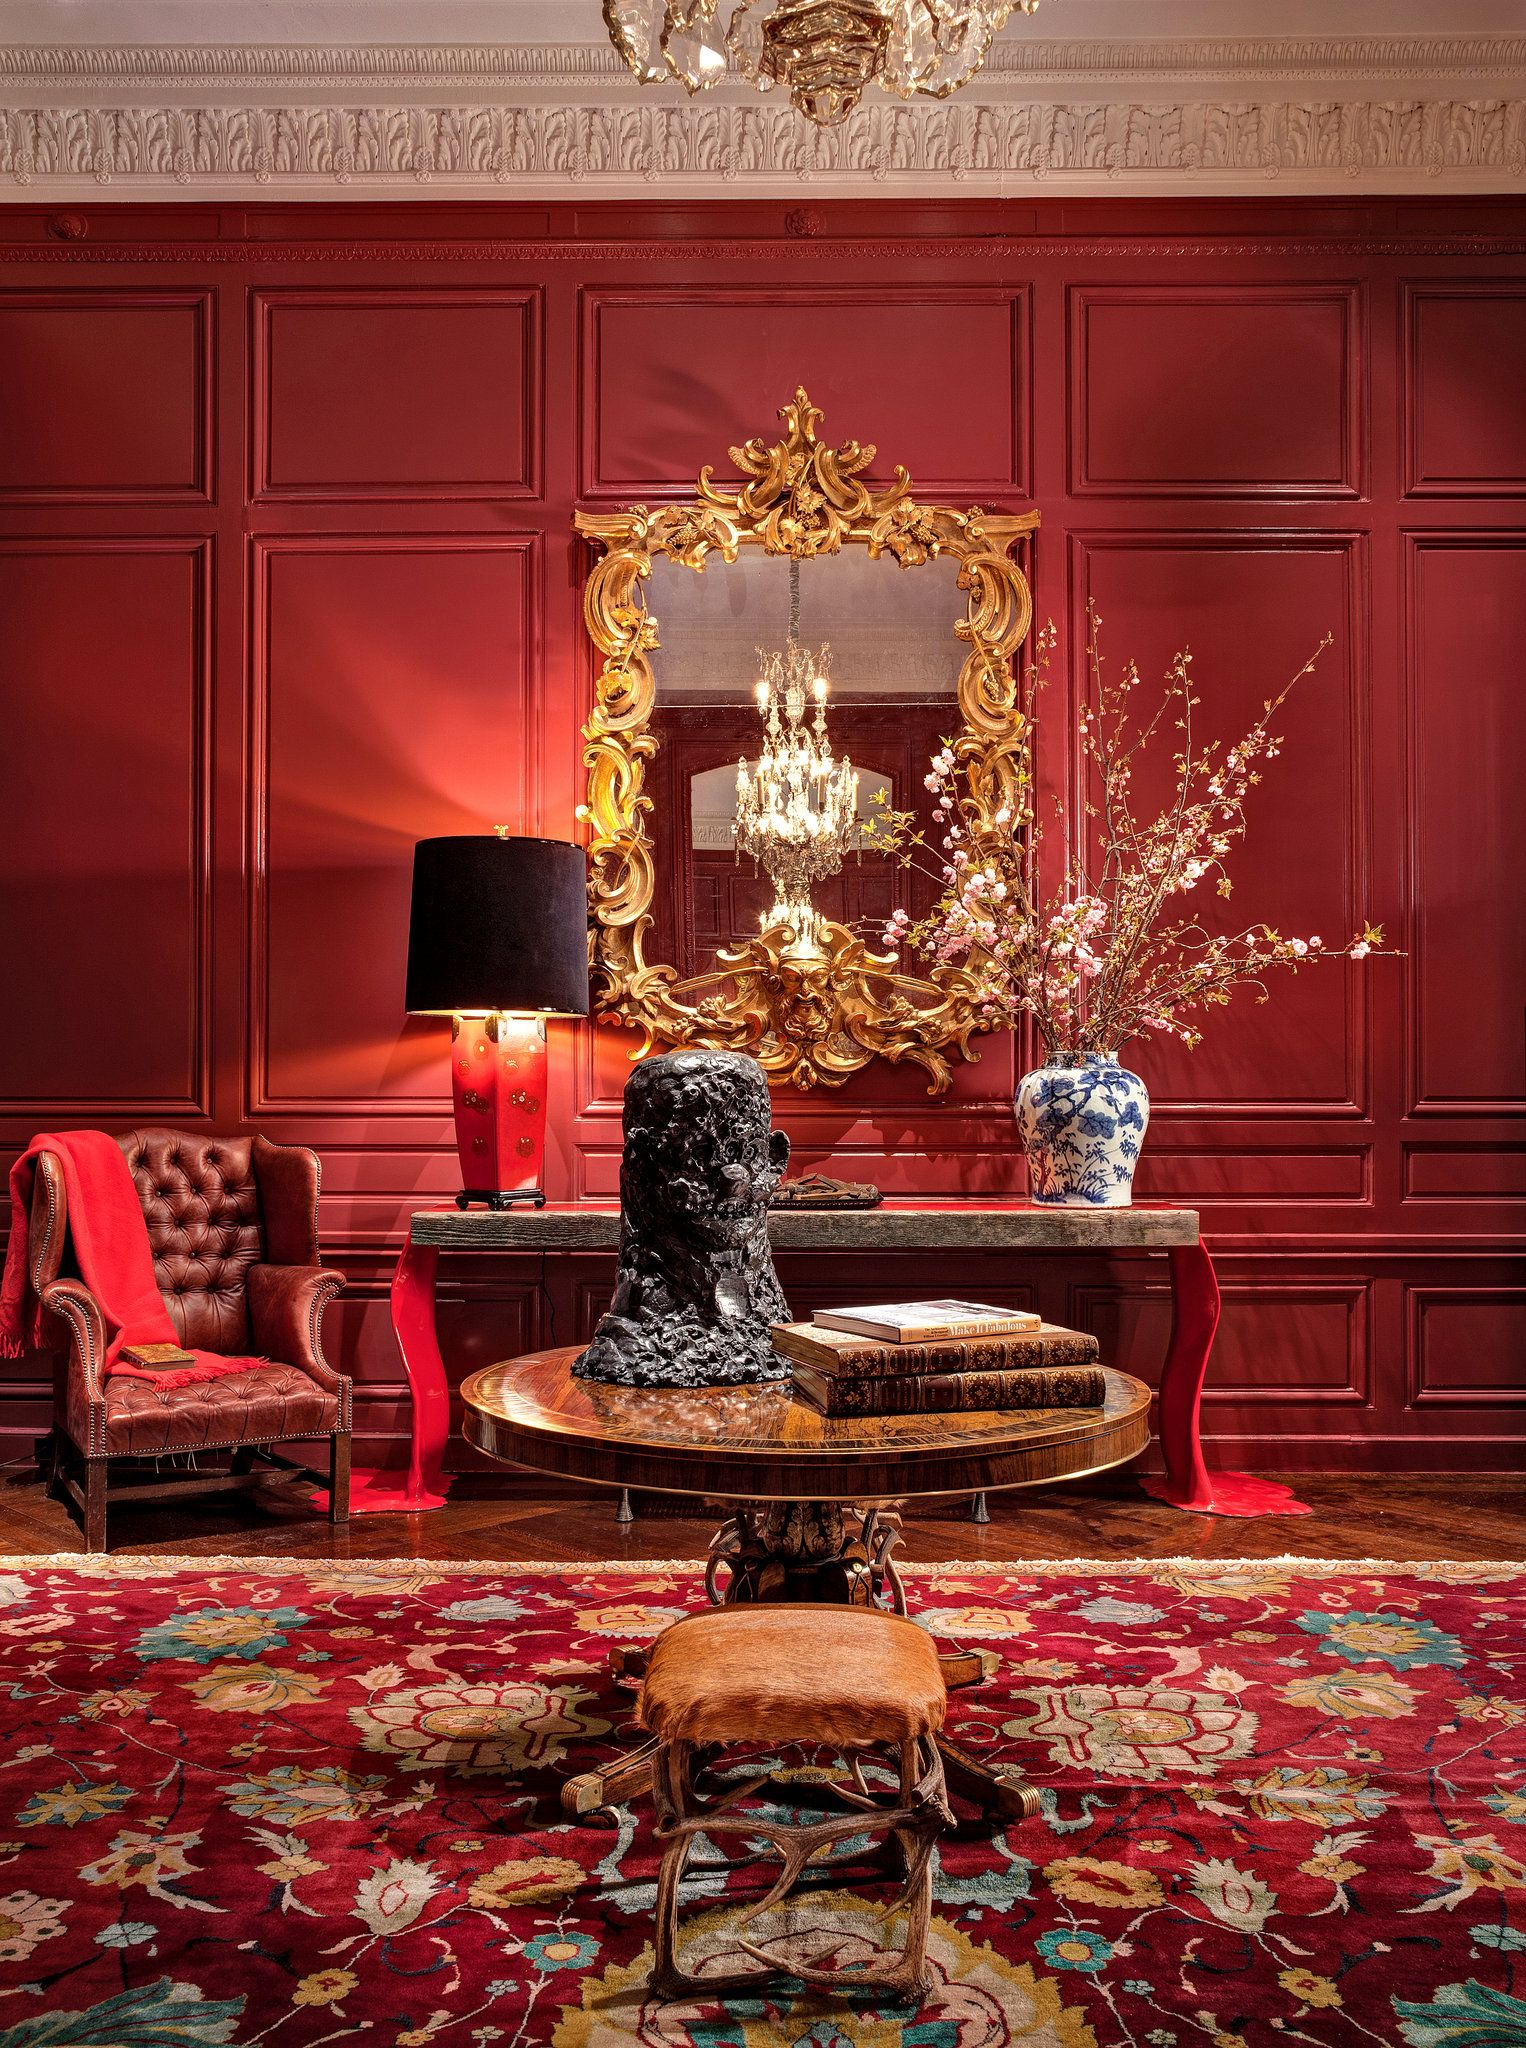 Rocking The Palazzo Published 2014 Red Decor Red Rooms Living Room Decor Red luxury room pictures